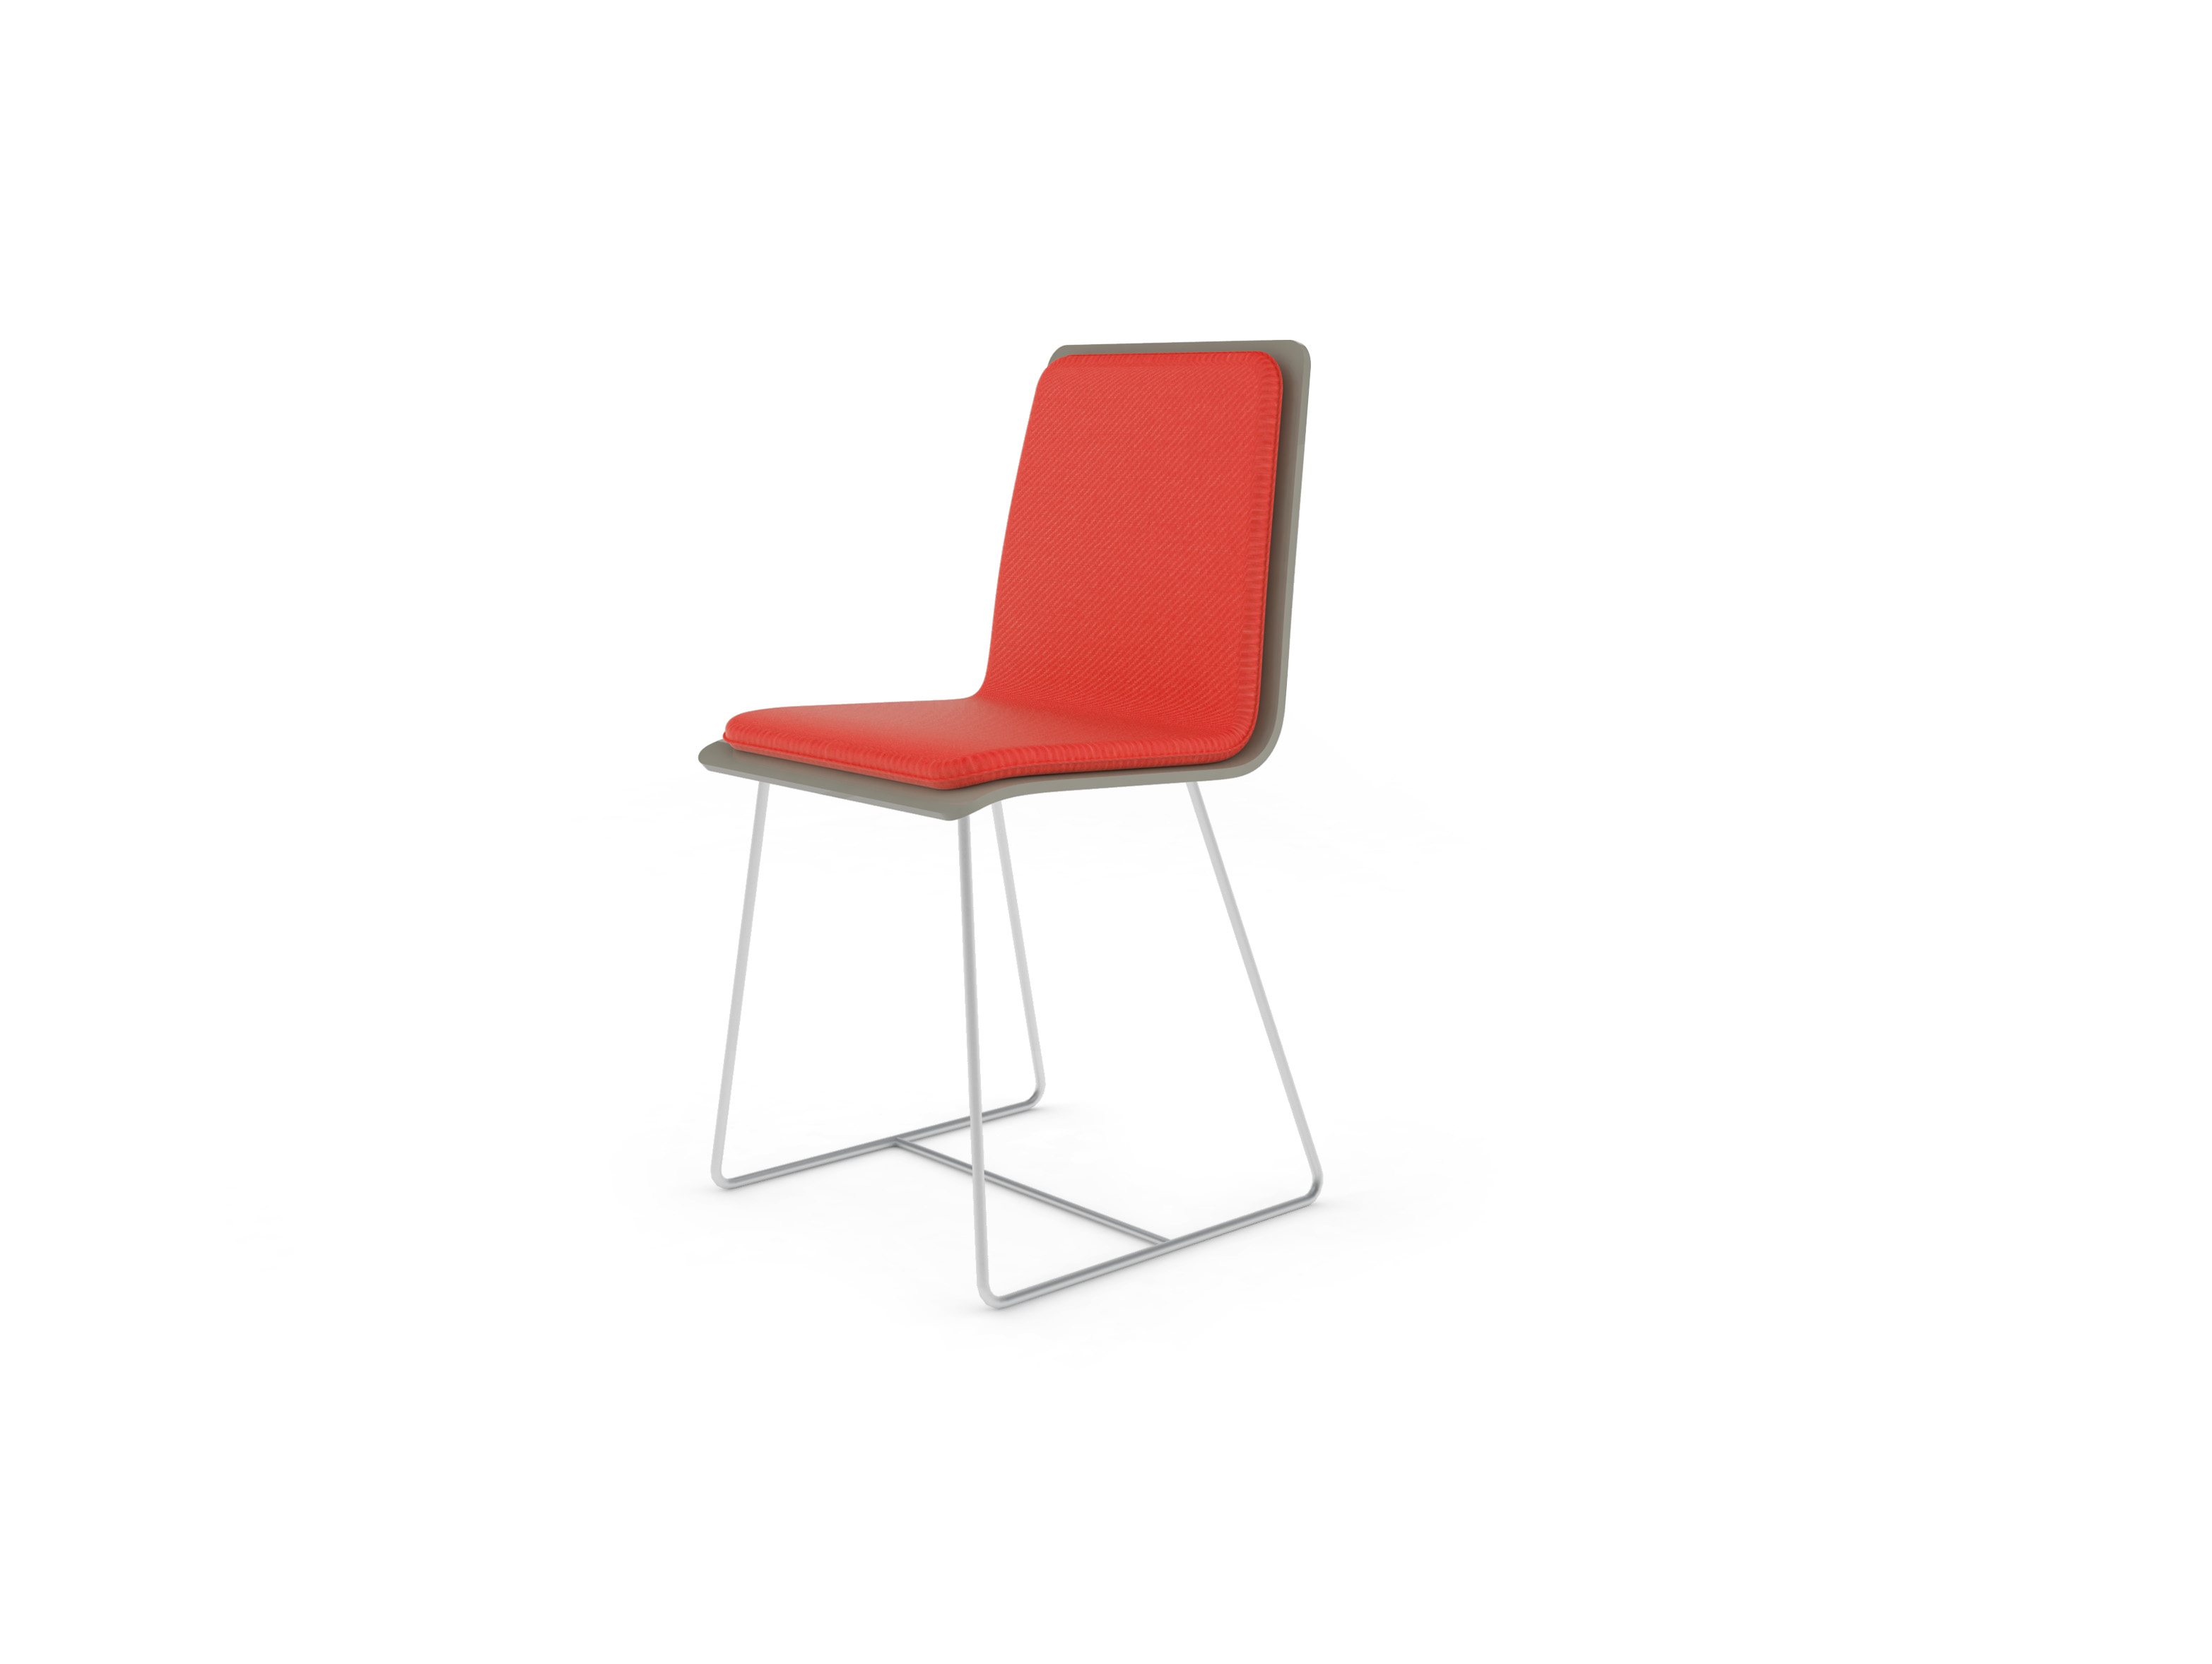 Chaise Bee outdoor PMMA gris perlé, coussin corail